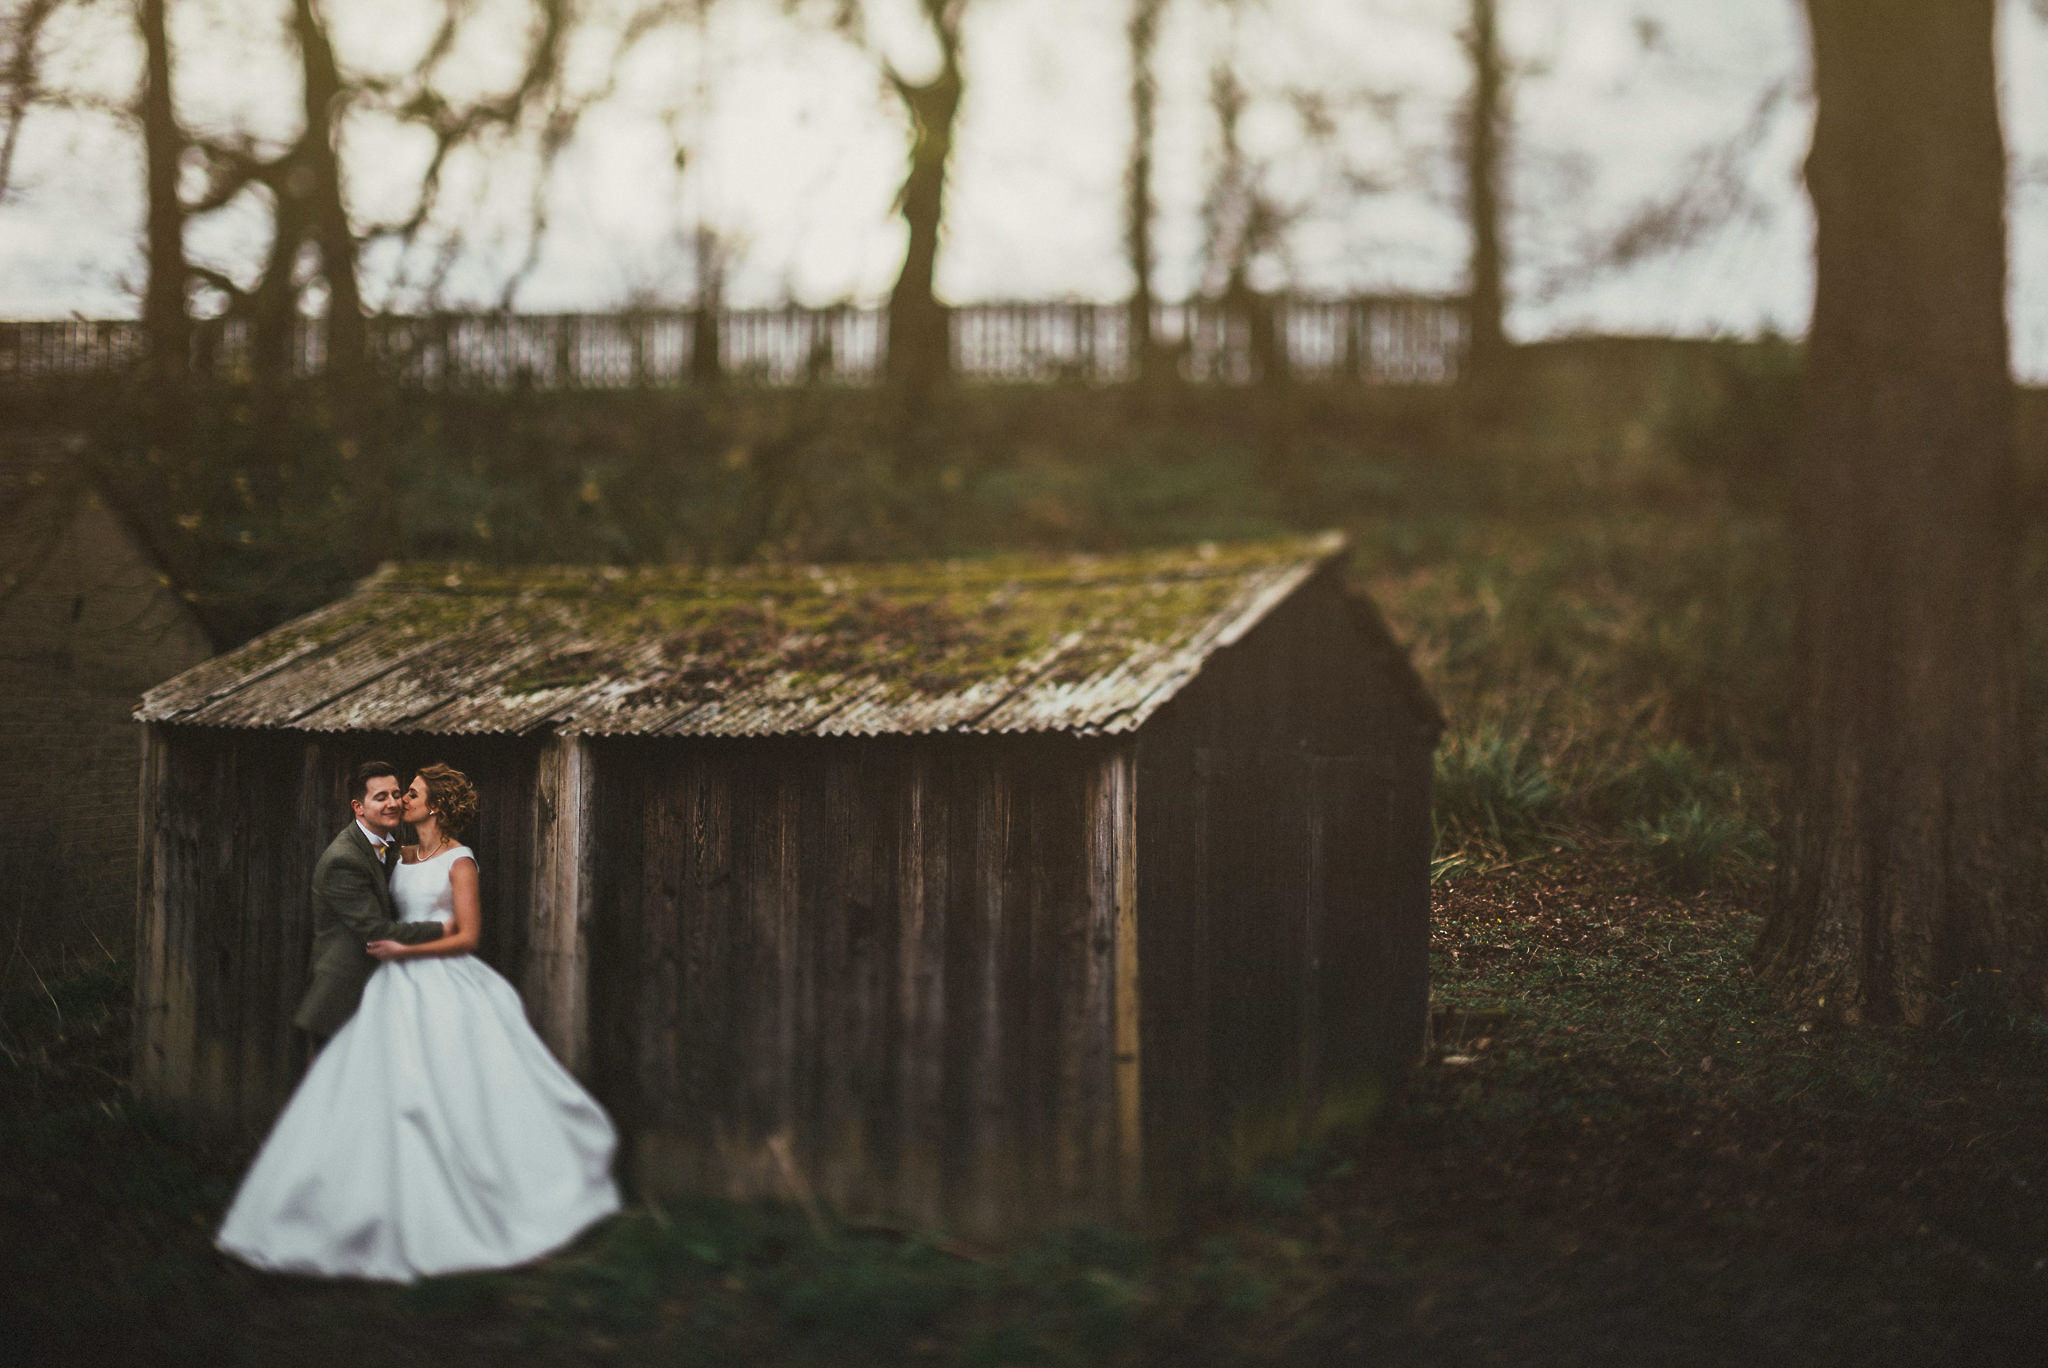 paul-marbrook-best-wedding-photographer-north-wales-144072